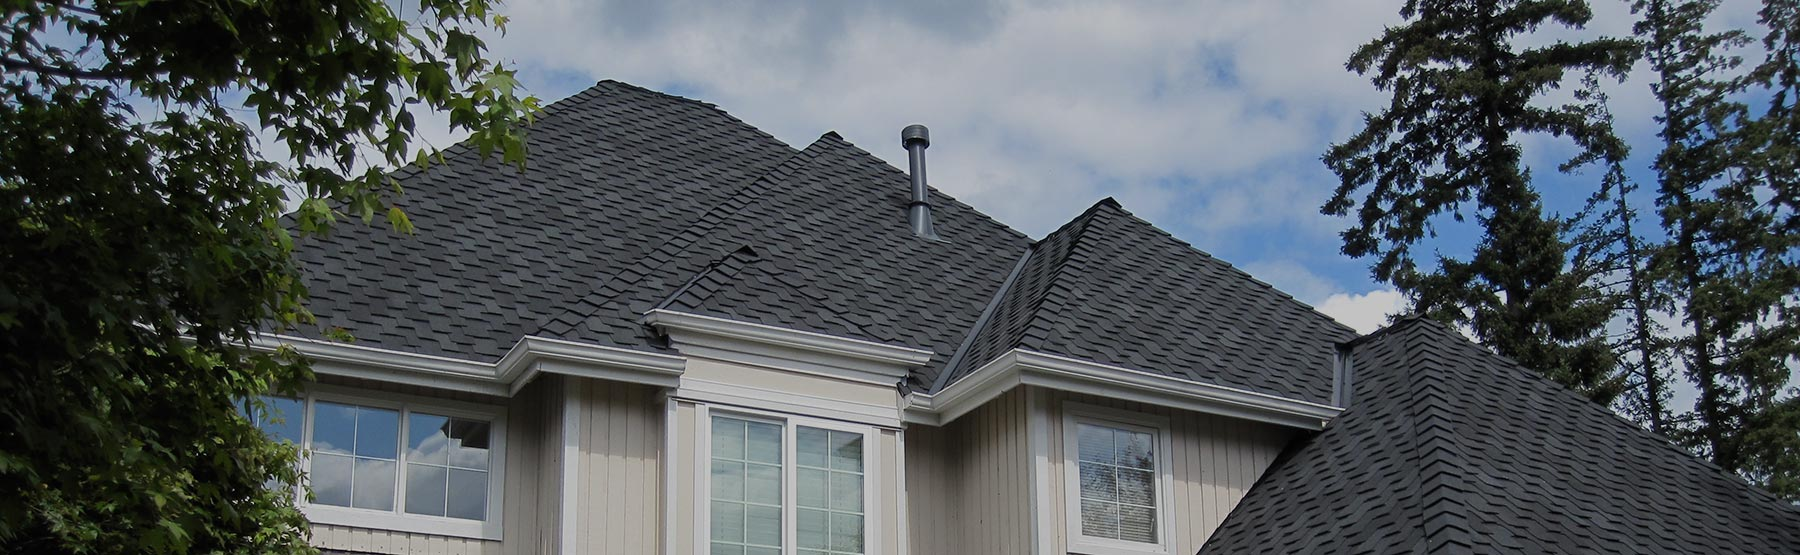 residential-roofing-resources-help1